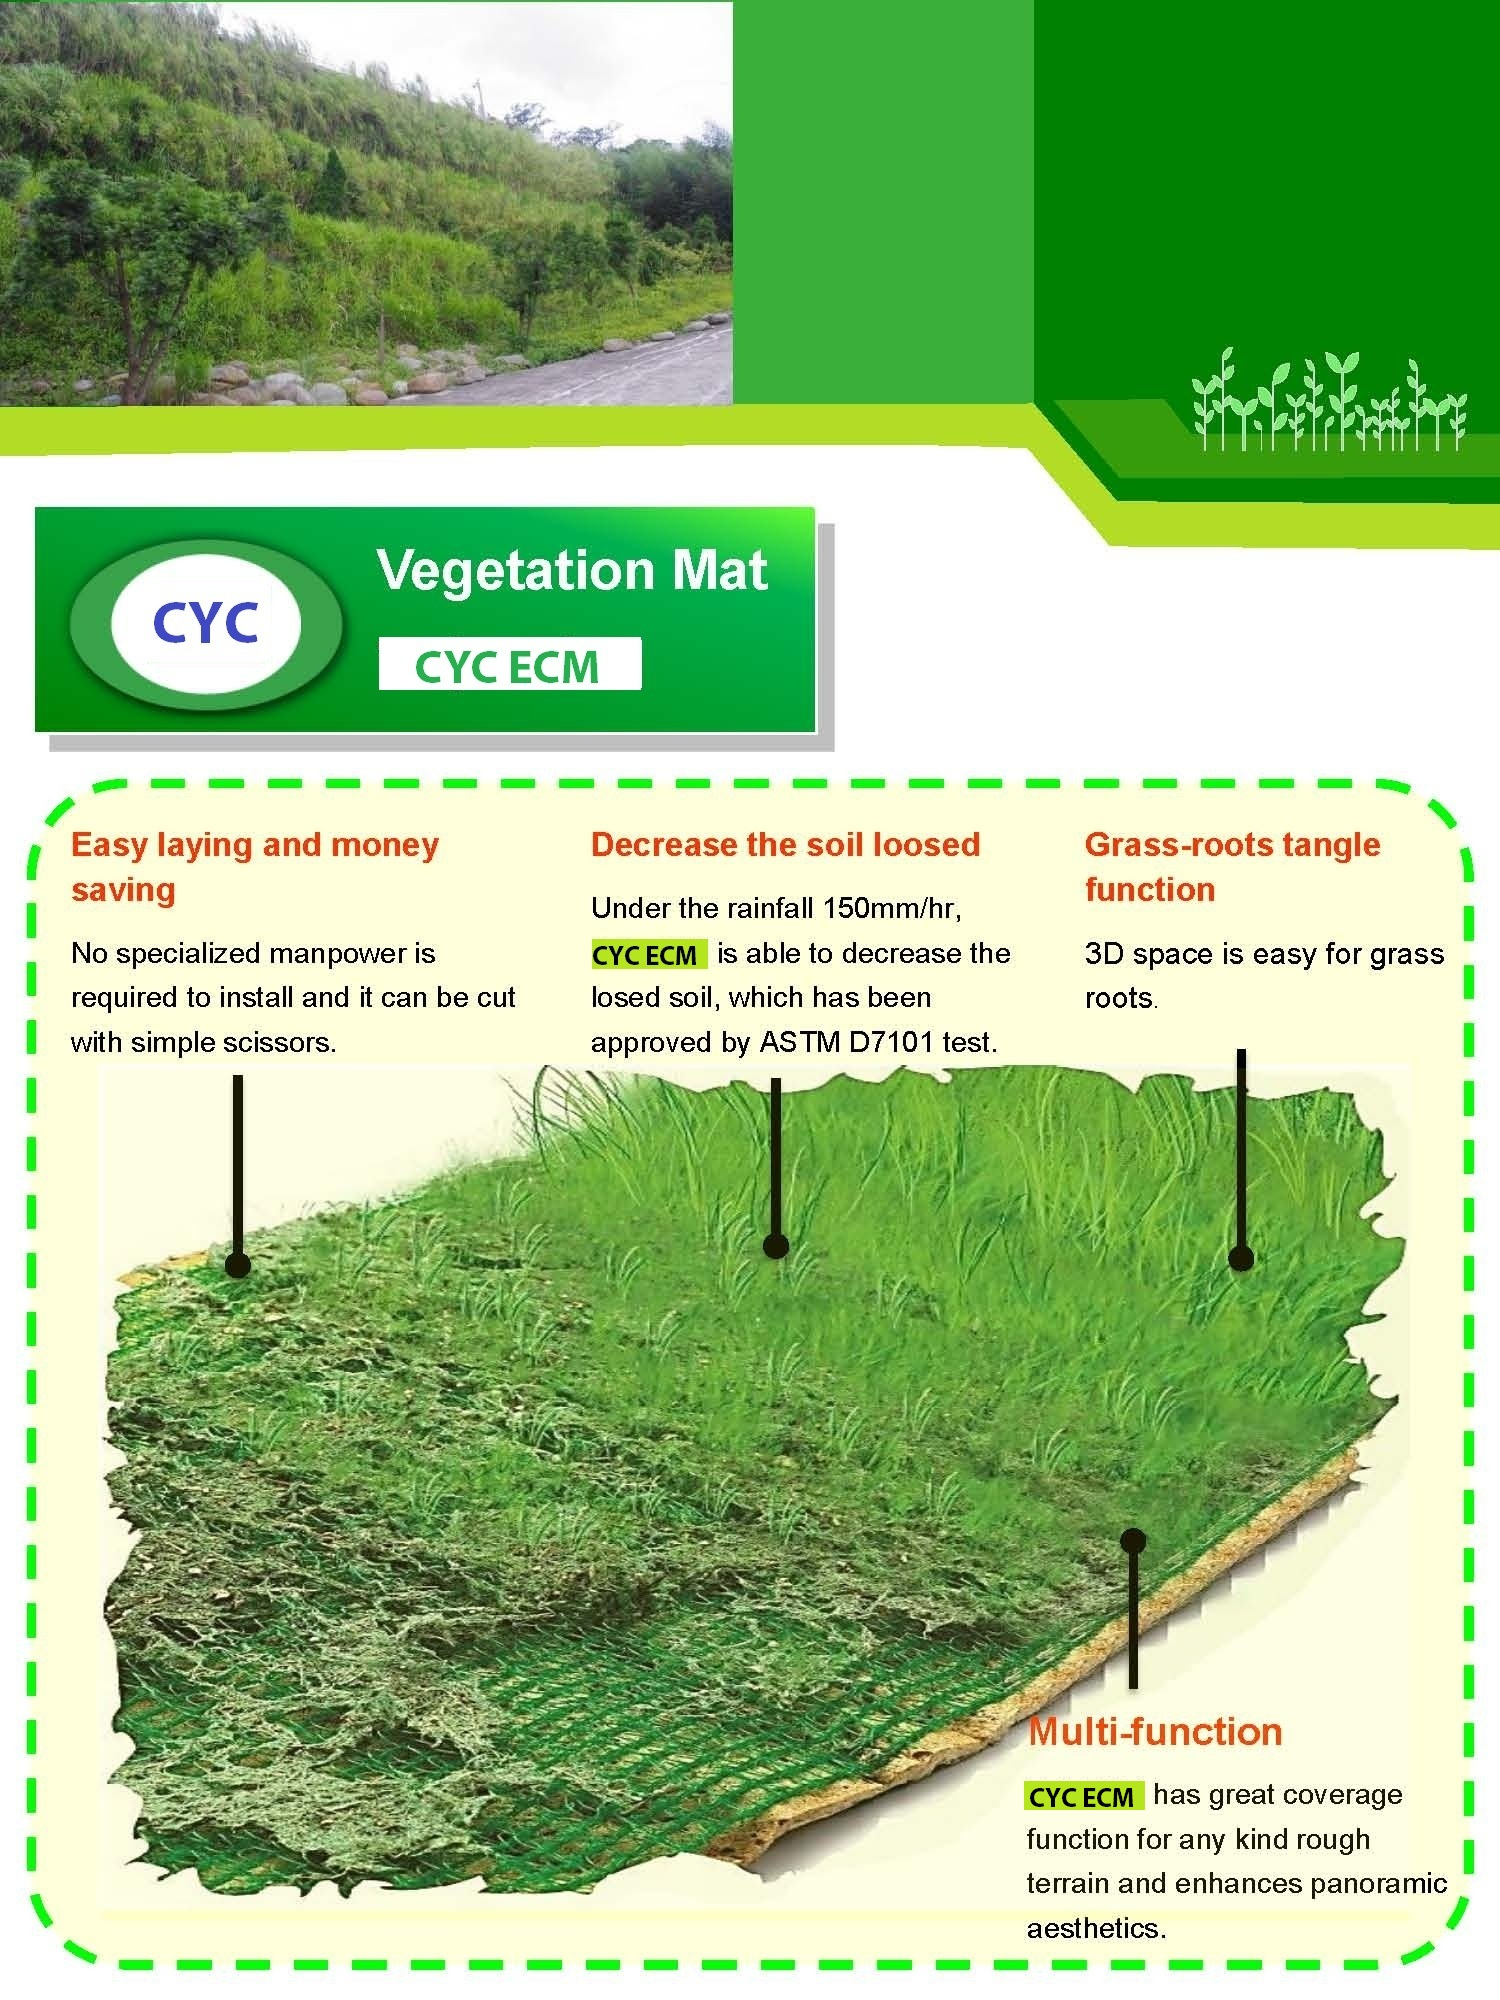 Innovative, Durable Erosion Control & Vegetation Mat